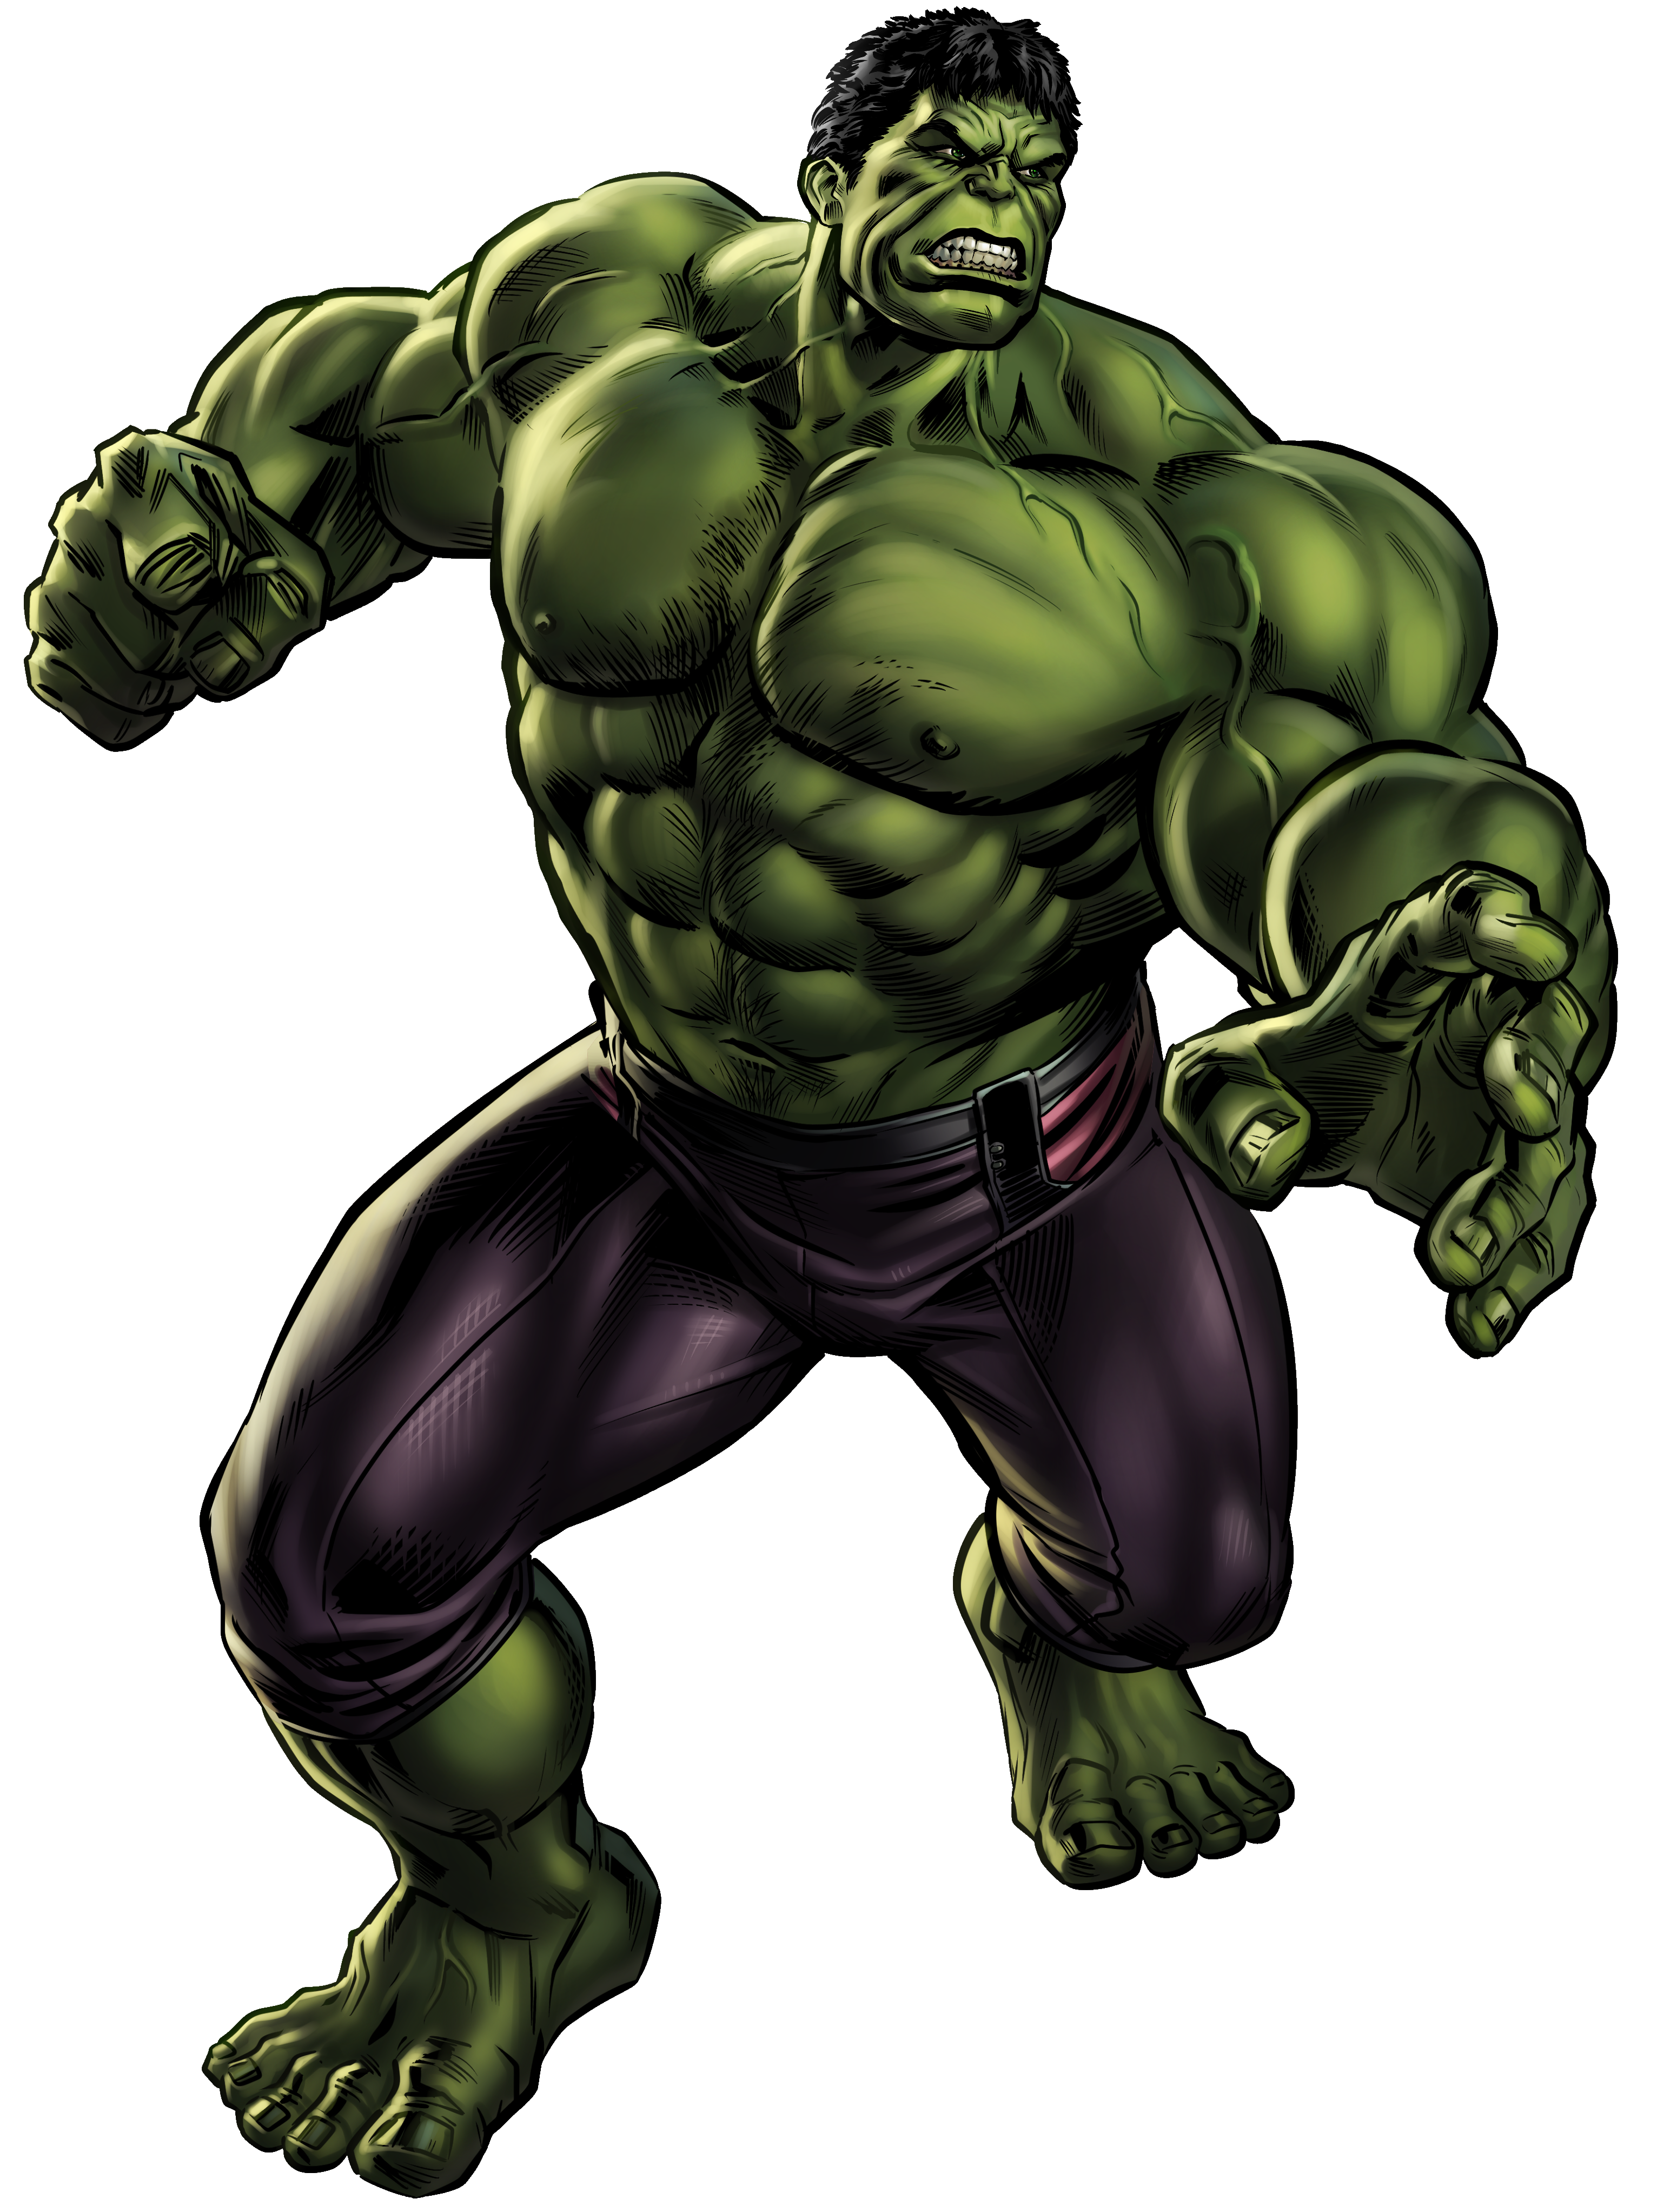 It's just an image of Bewitching Picture of the Hulk